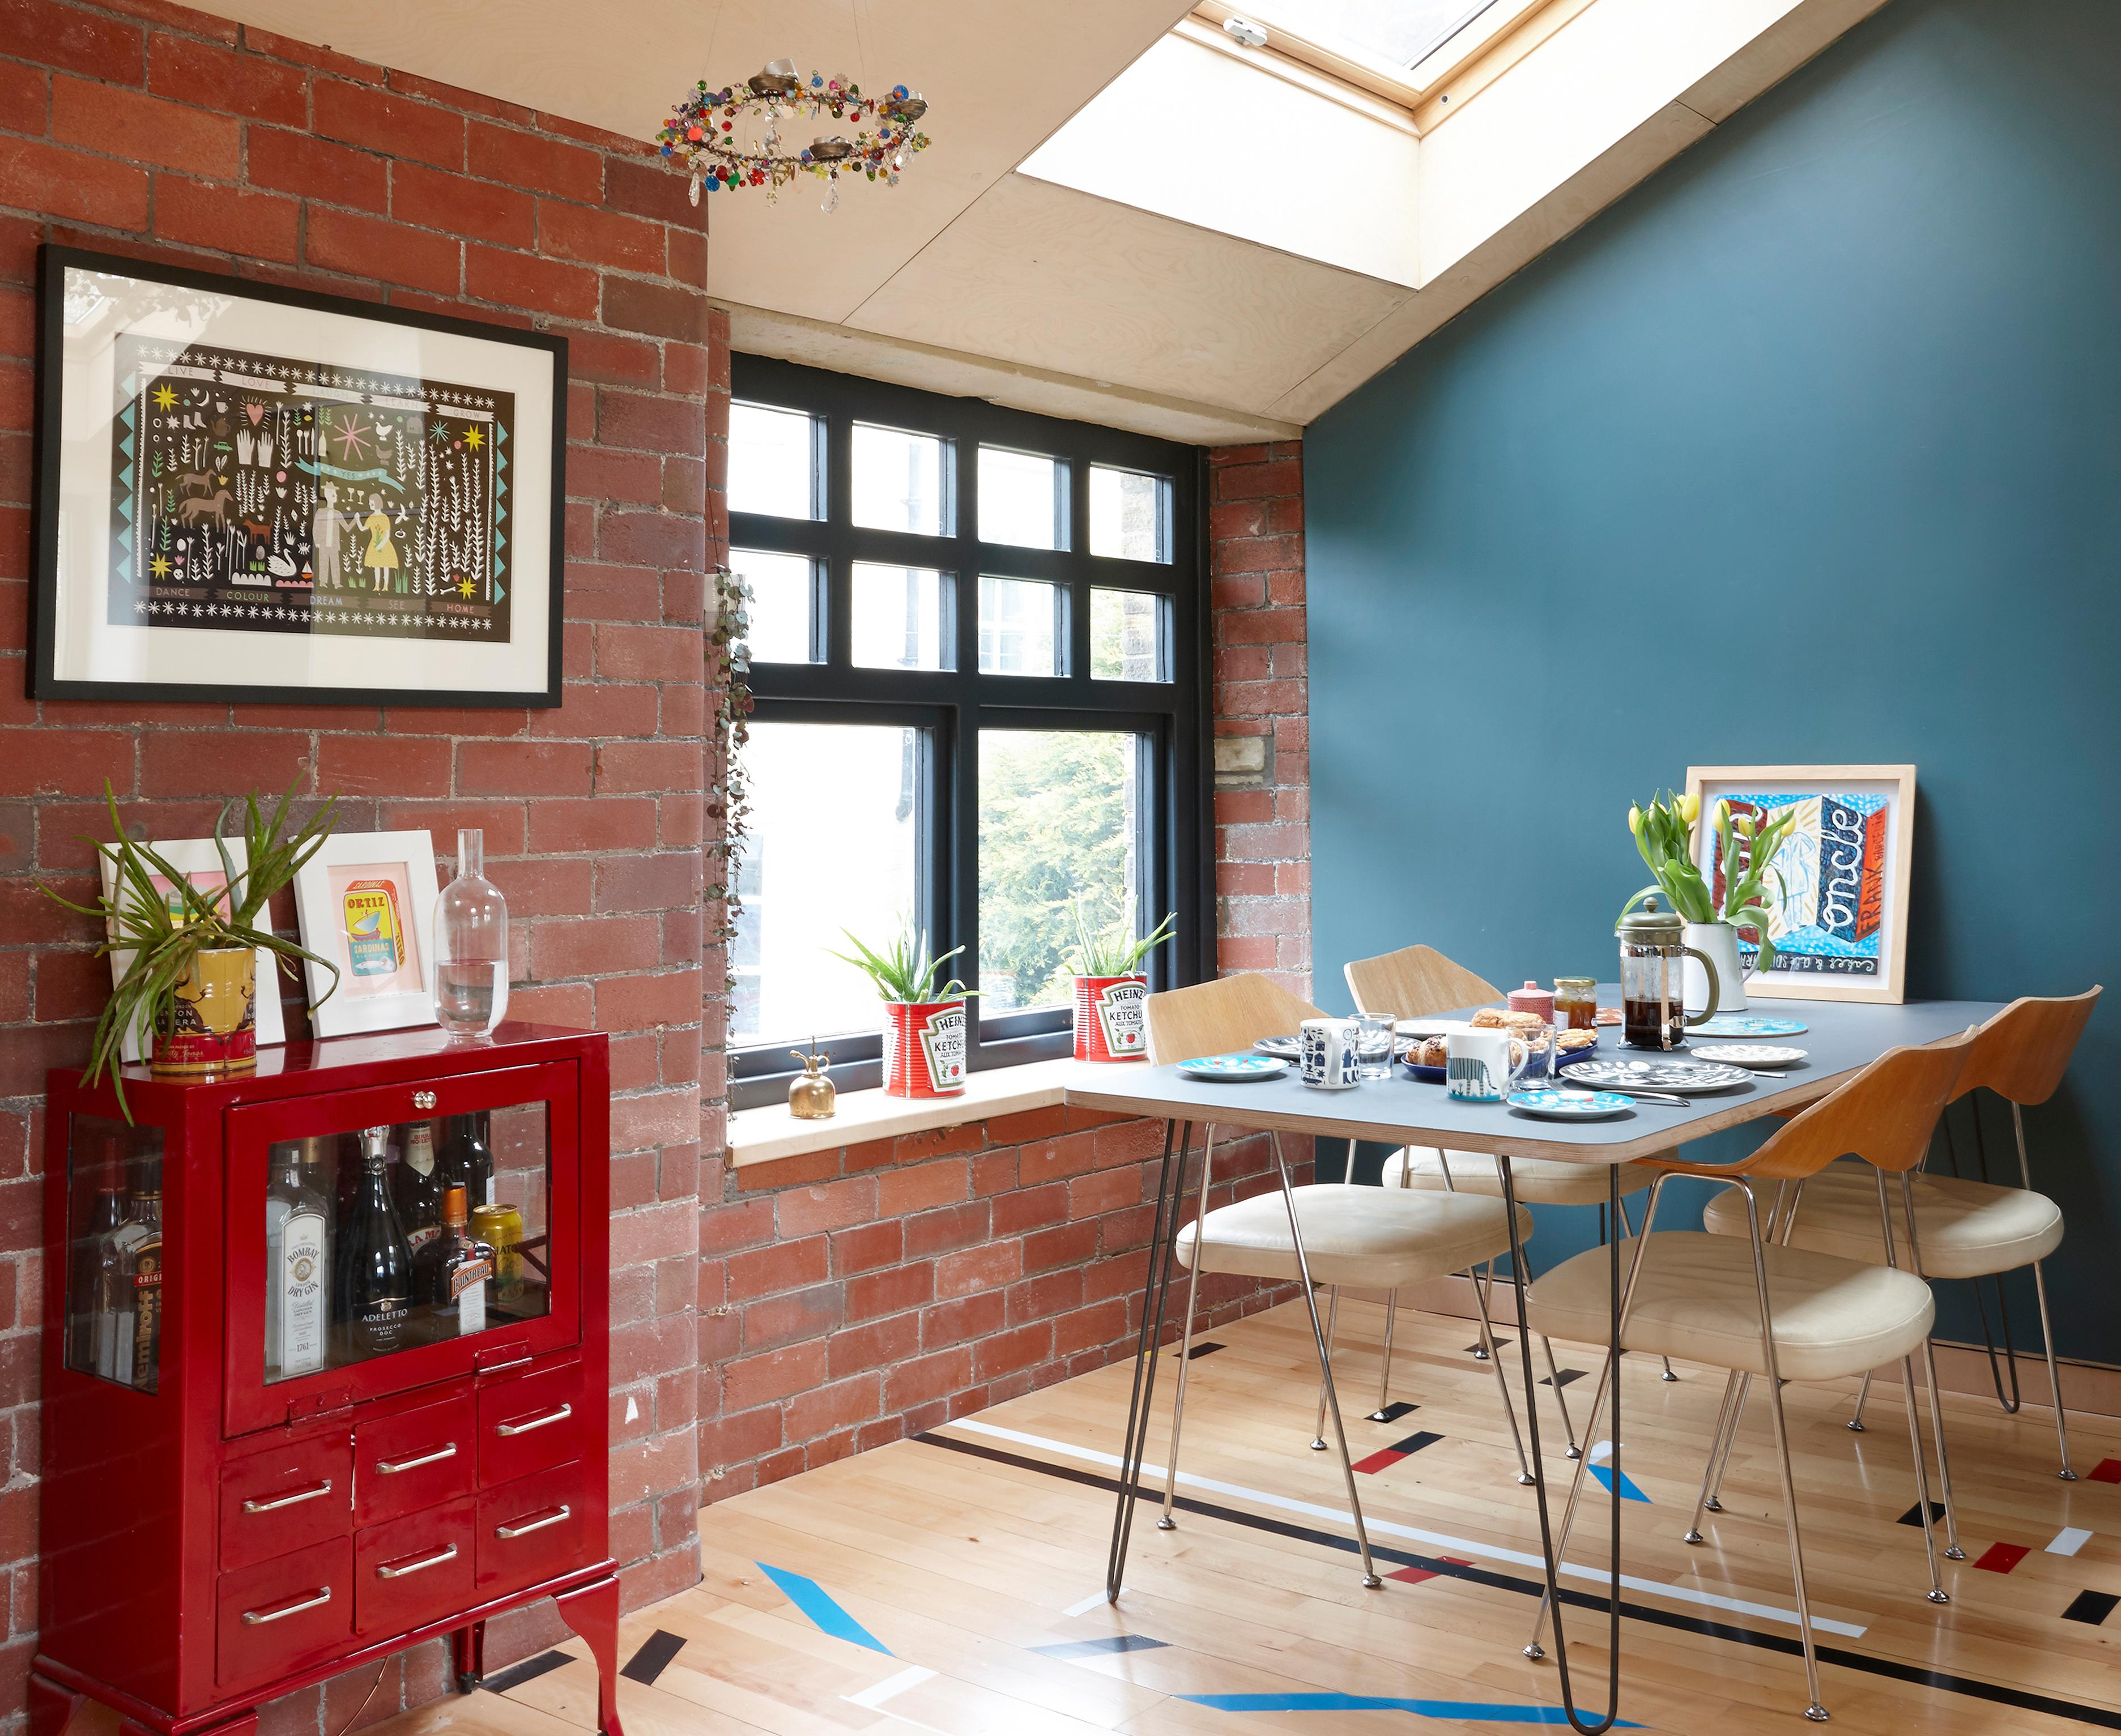 Switcheroo: the former mill that's now an upside-down family home